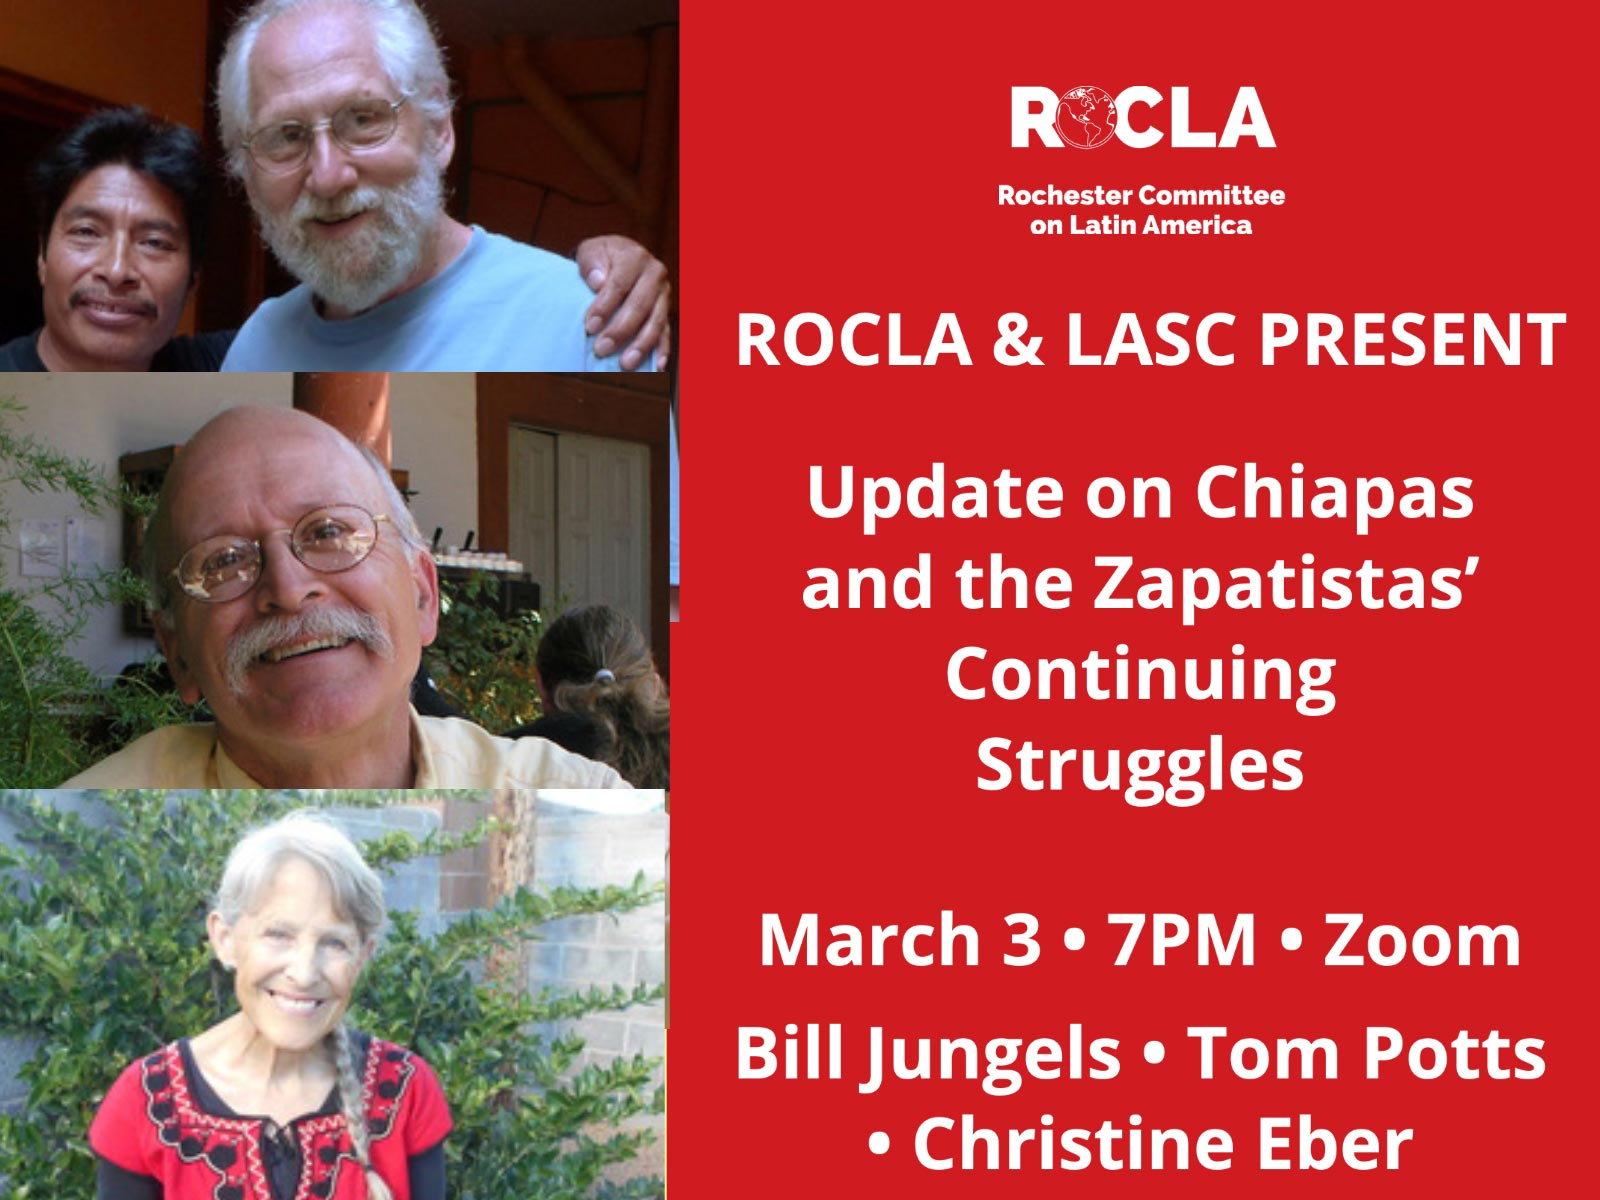 Update on Chiapas and the Zapatistas' Continuing Struggles